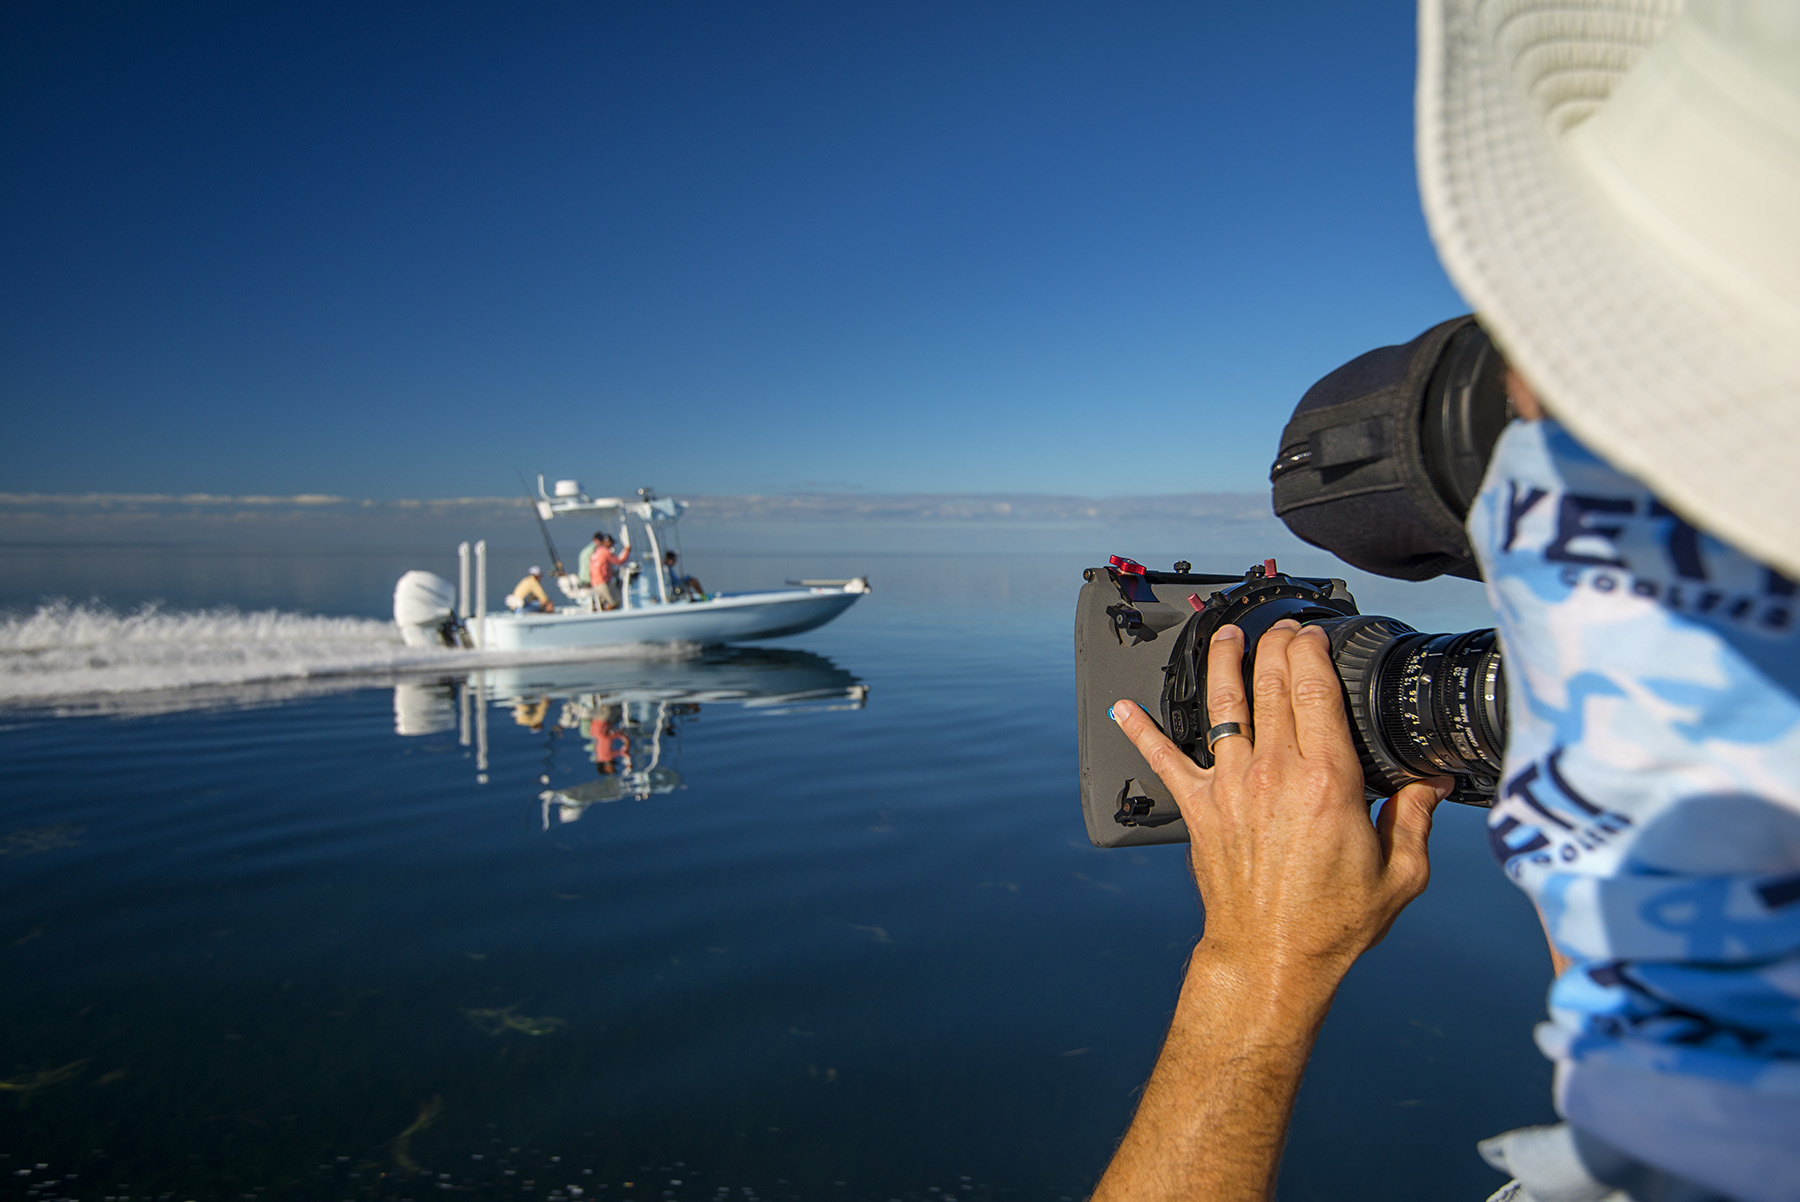 cameraman, steve derstein, gets the running shot on a slicked out Florida Bay. nikon d800, 22mm, f/5.6, 1/800 sec